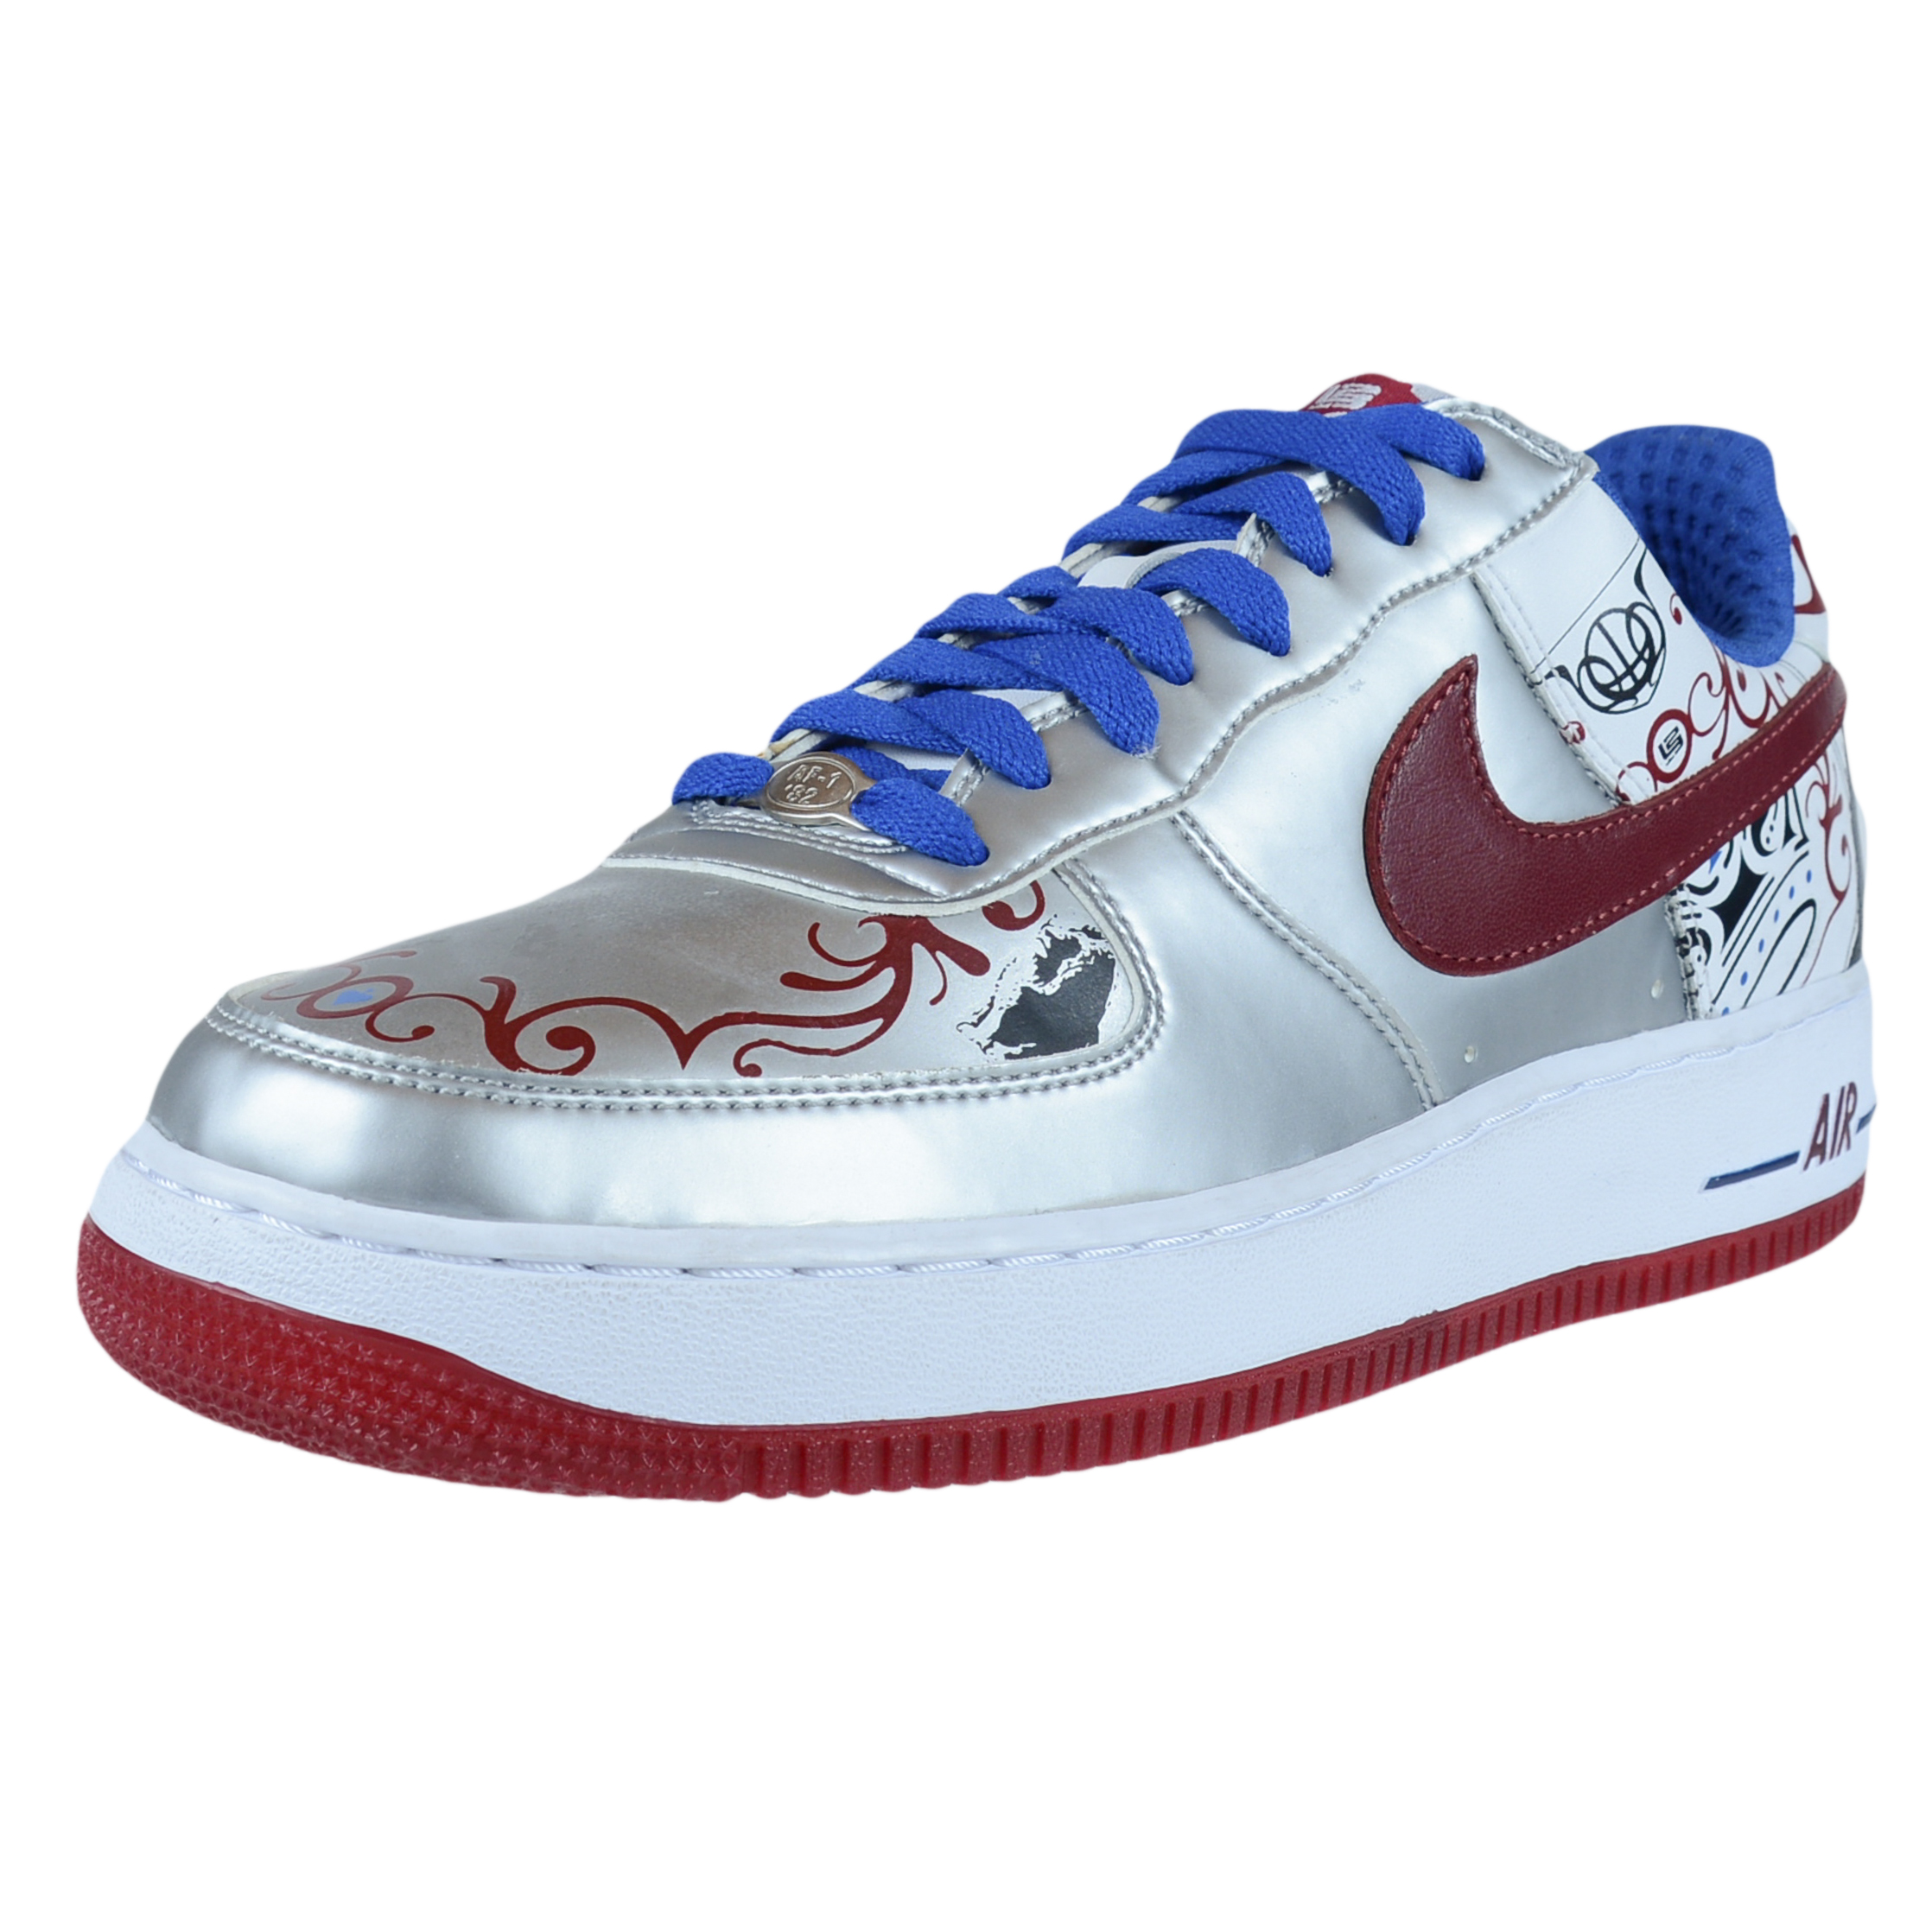 NIKE AIR FORCE 1 PREMIUM LEBRON COLLECTION ROYALE SILVER 313985 061 SIZE 9